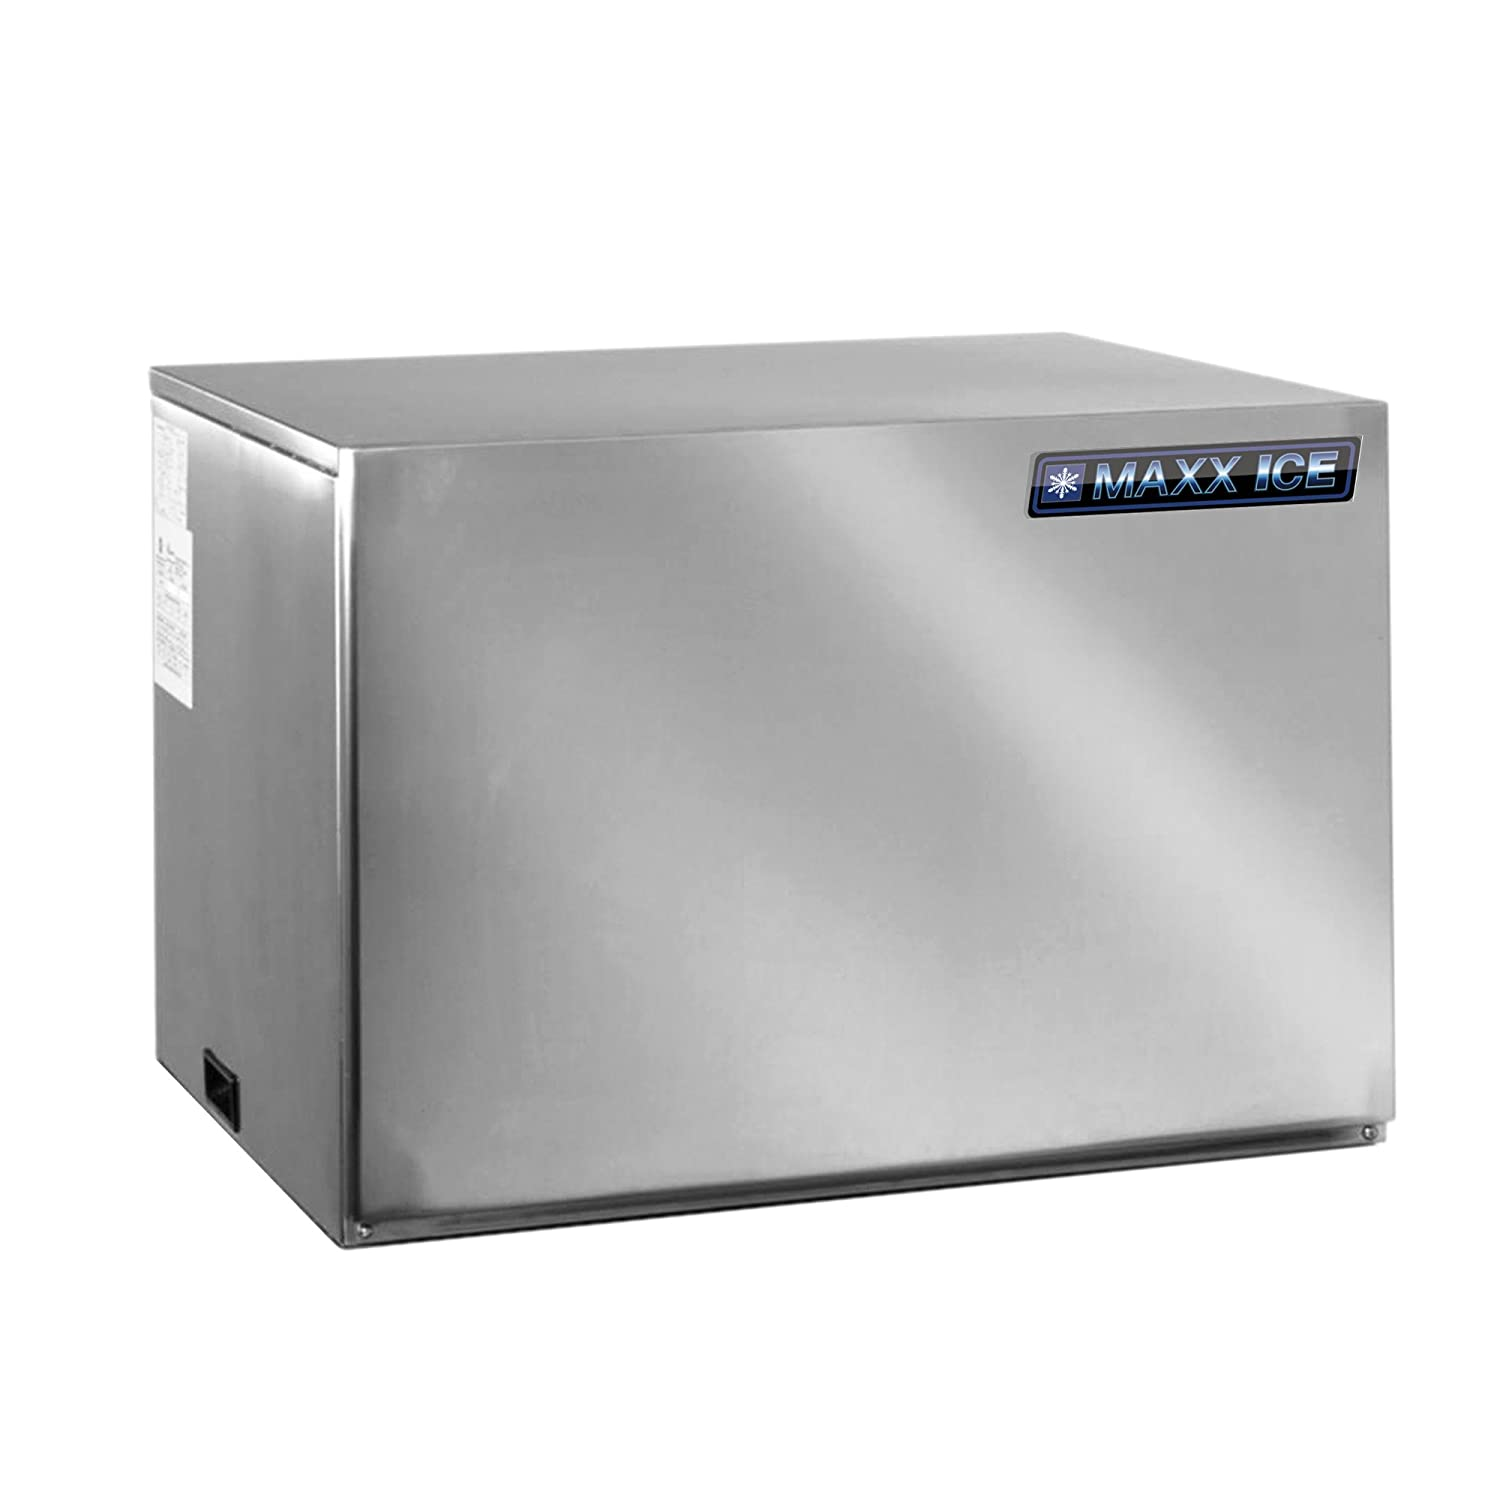 Maxx Ice MIM452 30' Modular Ice Maker with up to 450 lb Daily Ice Production Stainless Steel Exterior Air-Cooled Condenser and Easy to Use Automatic Cleaning Setting in Stainless